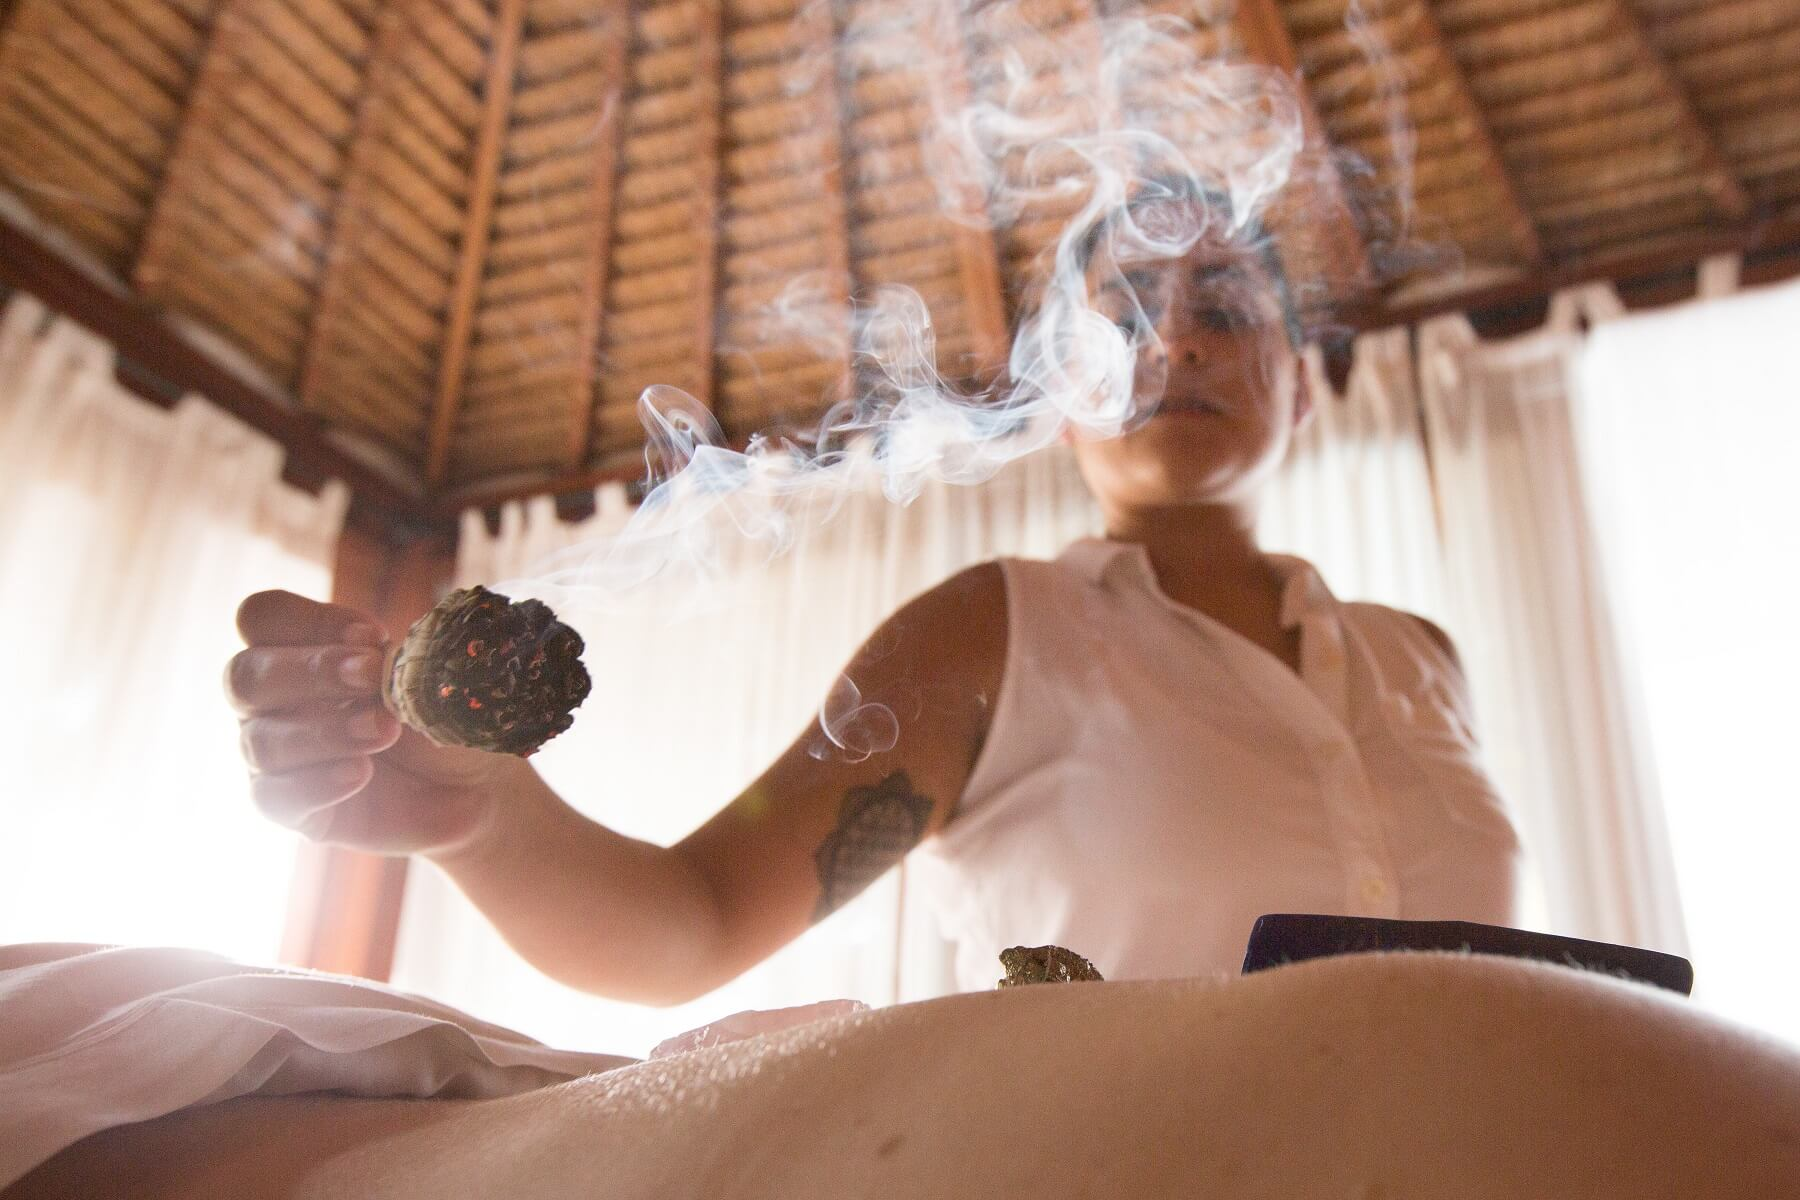 smoke and massage